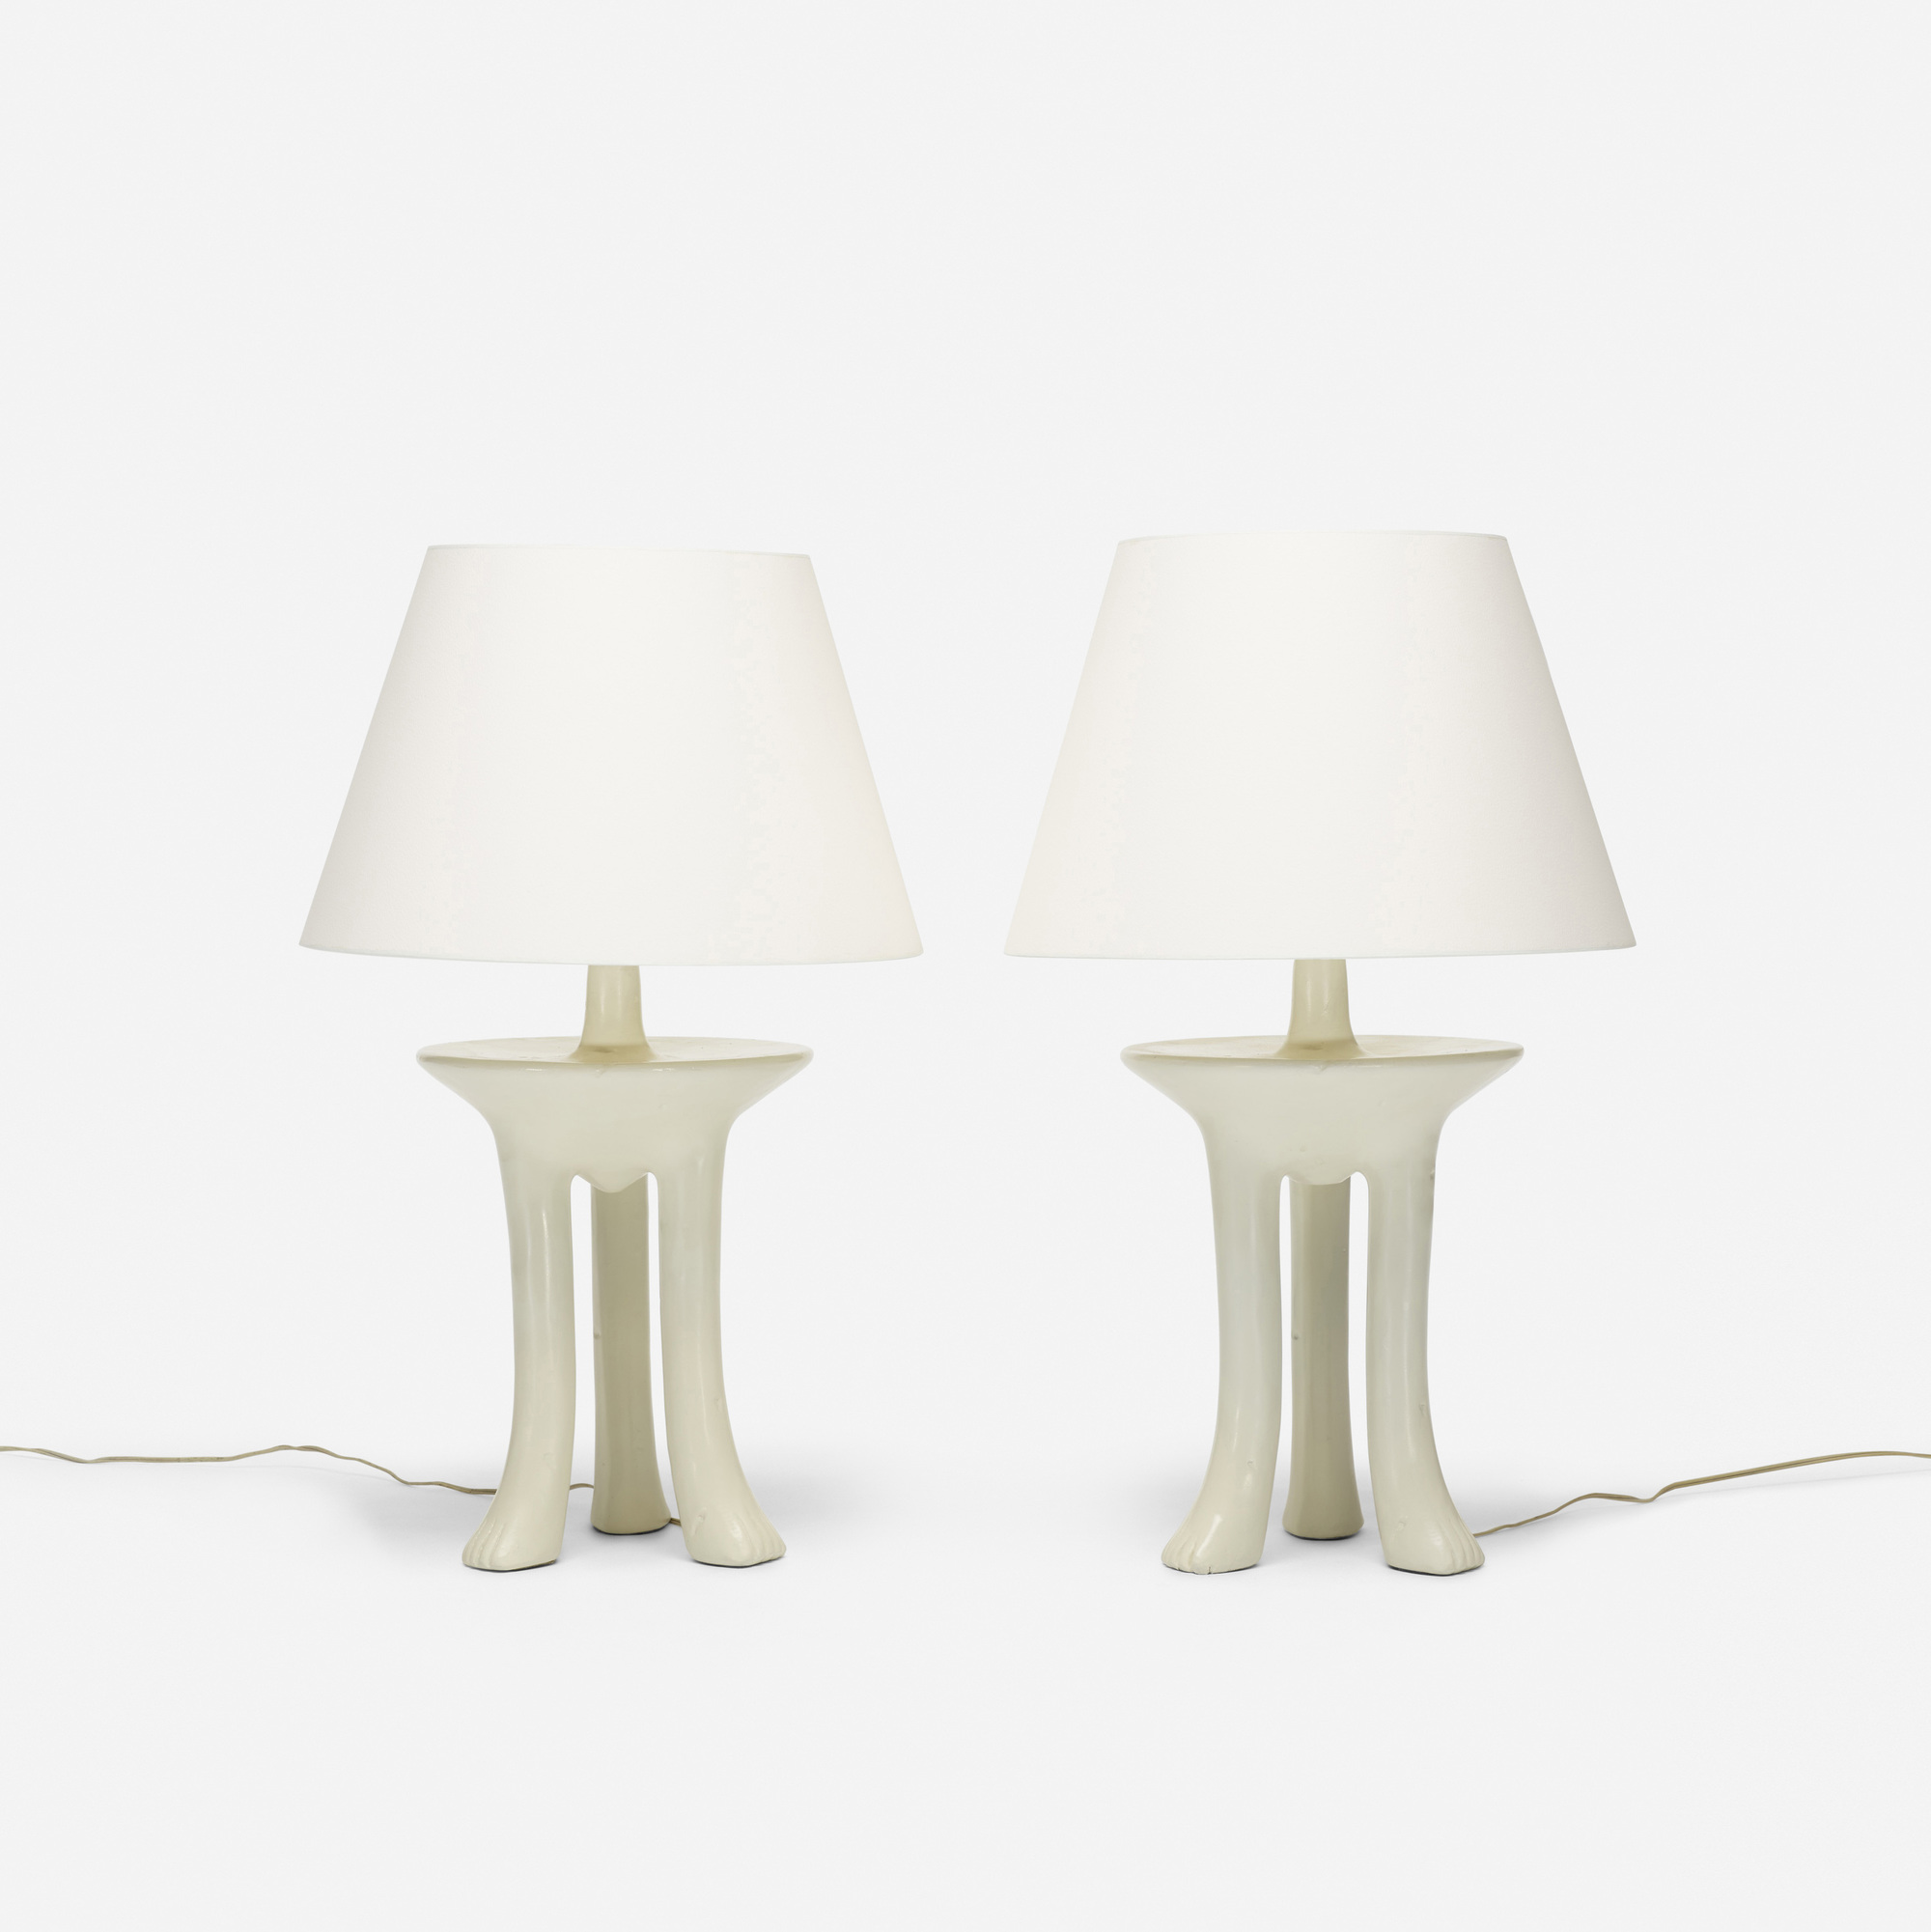 ... 324: John Dickinson / African Table Lamps, Pair (2 Of 3)